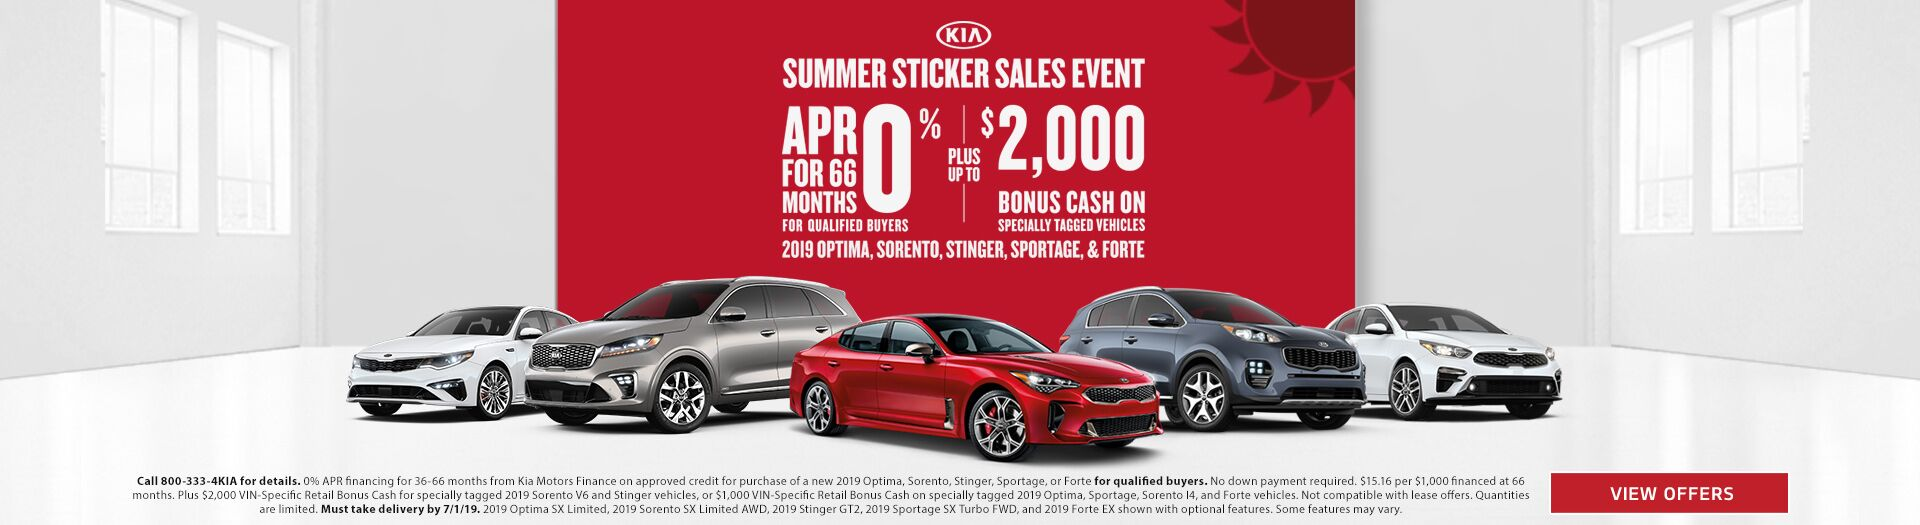 Kia Summer Sticker Savings Event